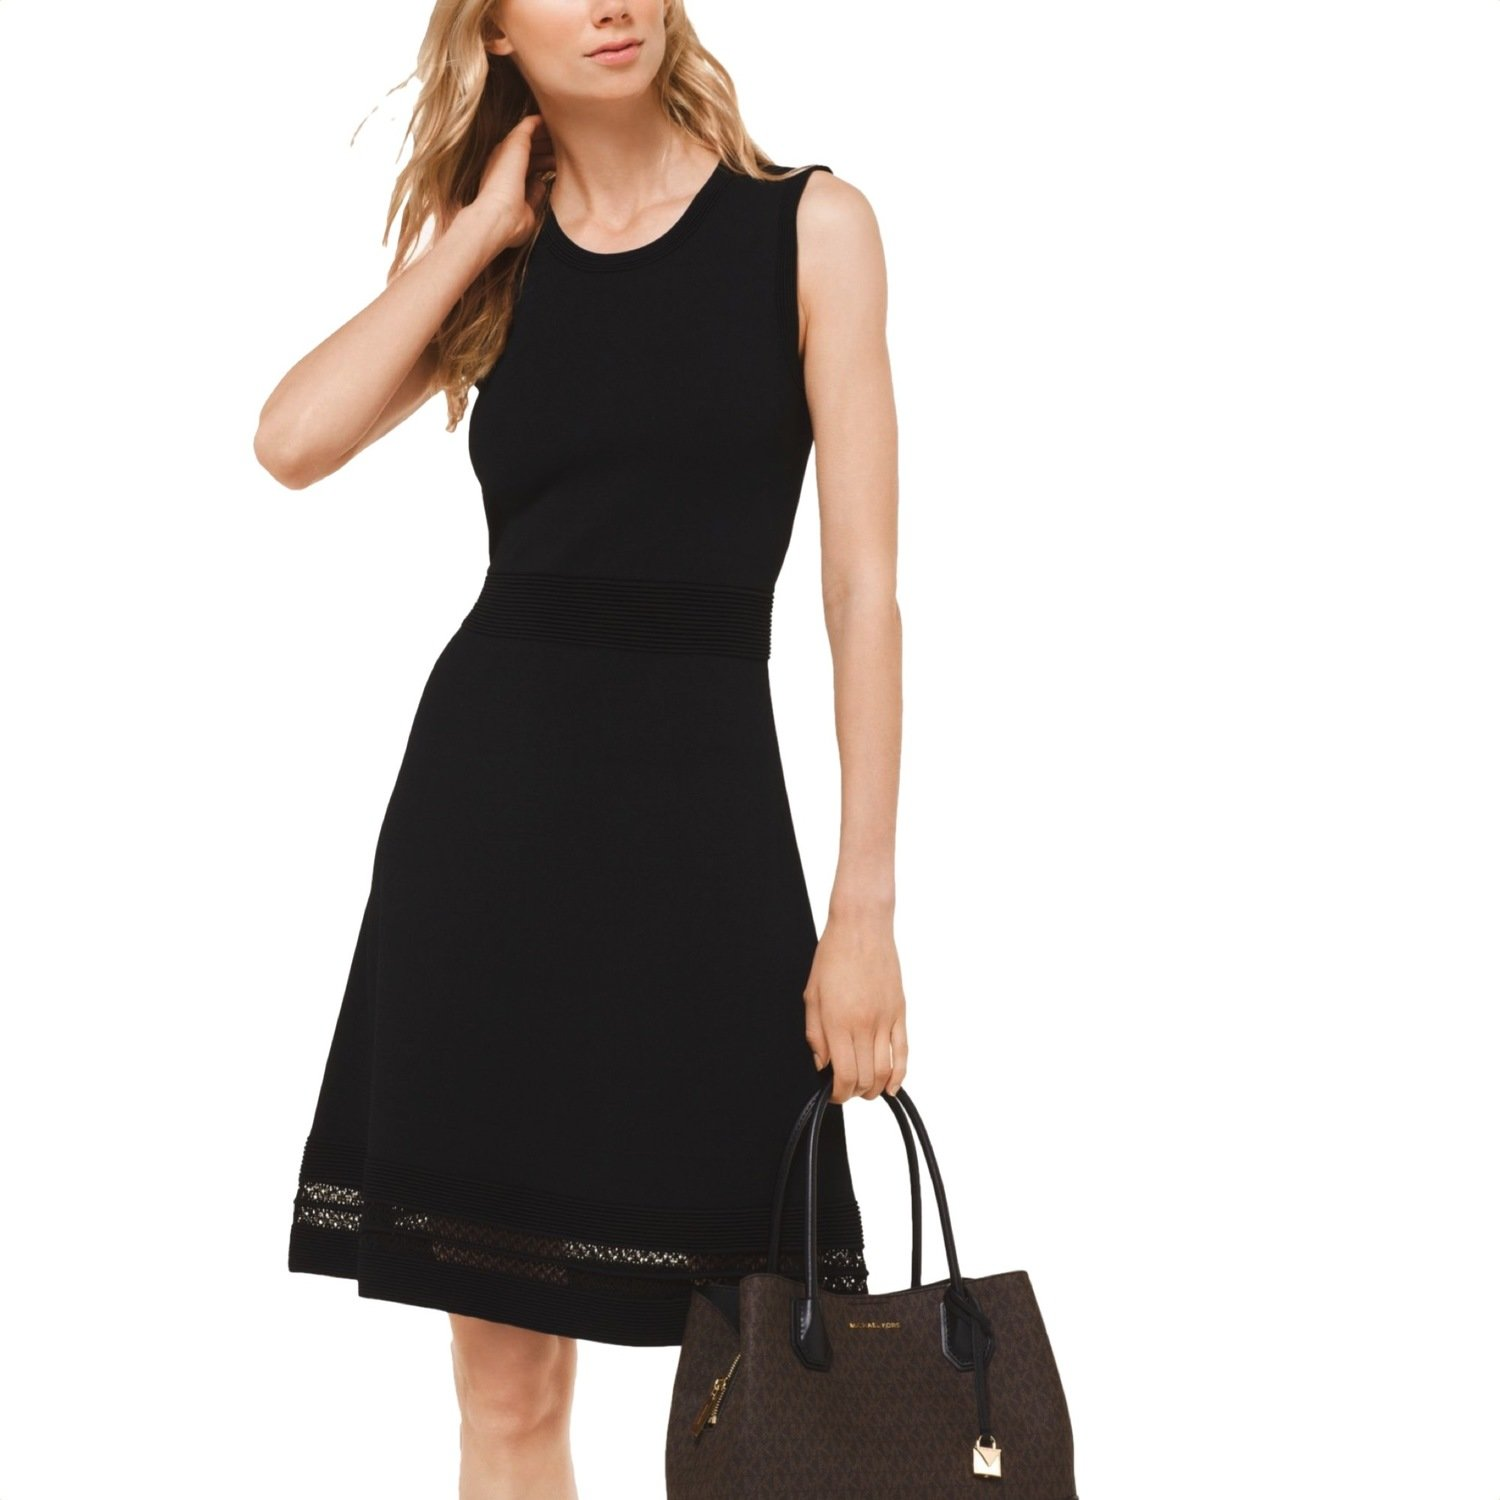 MICHAEL KORS - Abito testurizzato in viscosa stretch - Black